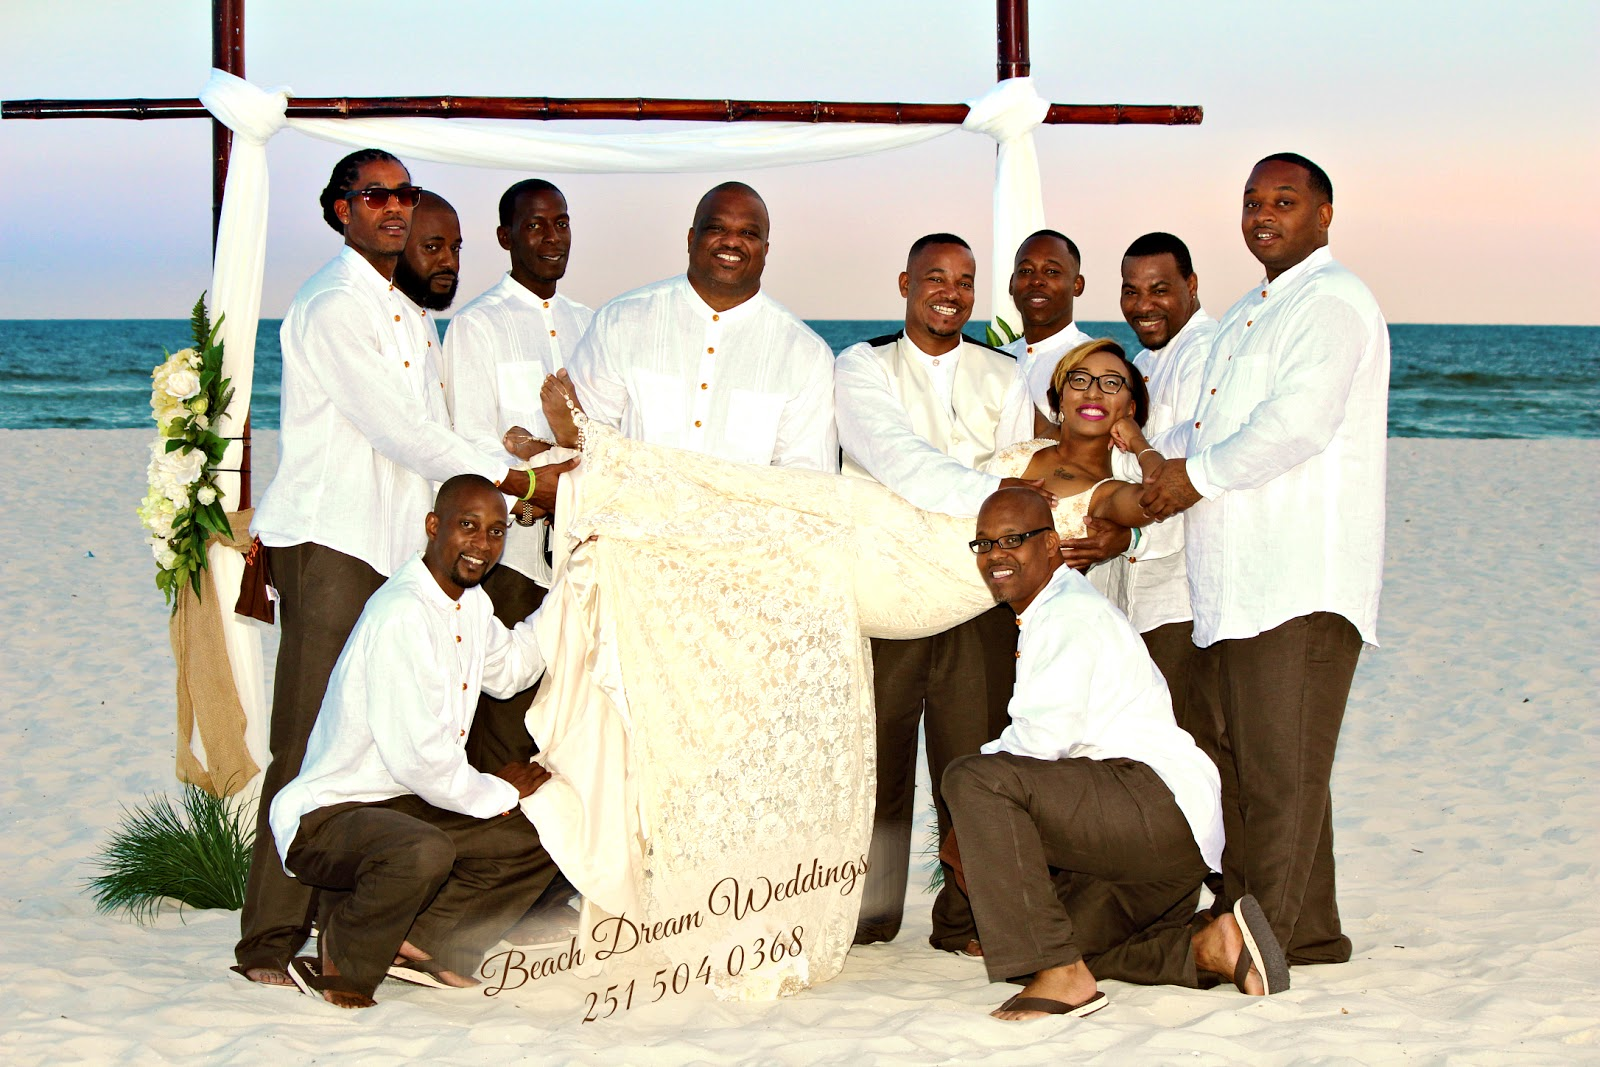 Beach Dream Wedding Of Delwin And Kayla In Orange Alabama September